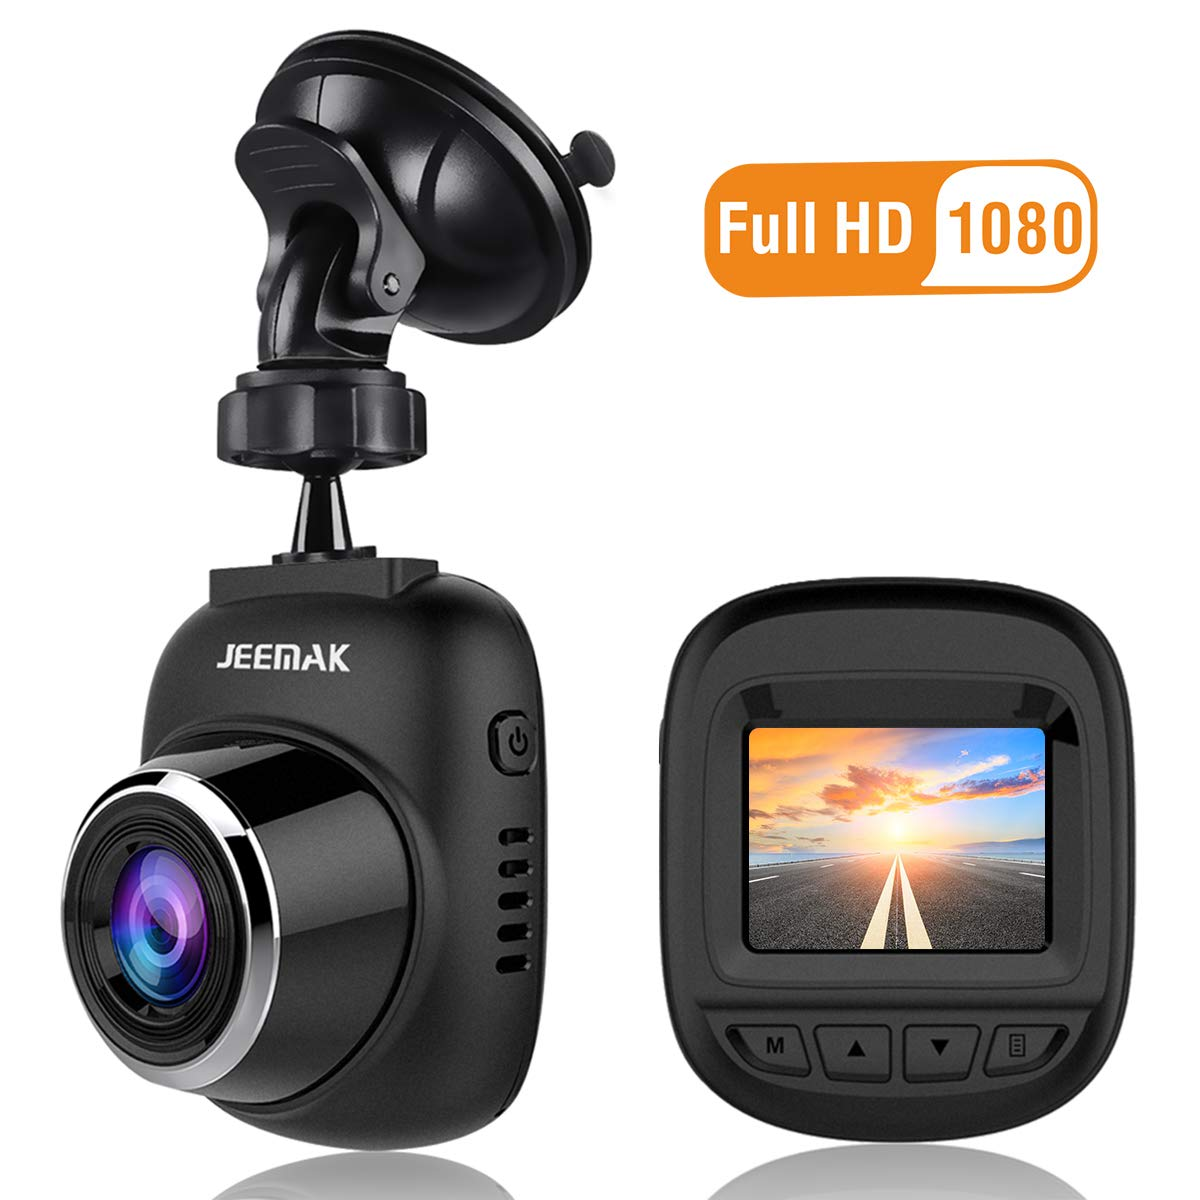 JEEMAK Mini Dash Cam 1080P FHD DVR Car Driving Recorder WDR 1.5 Inch LCD Screen Built In G-Sensor Loop Recording and Motion Detection CE11